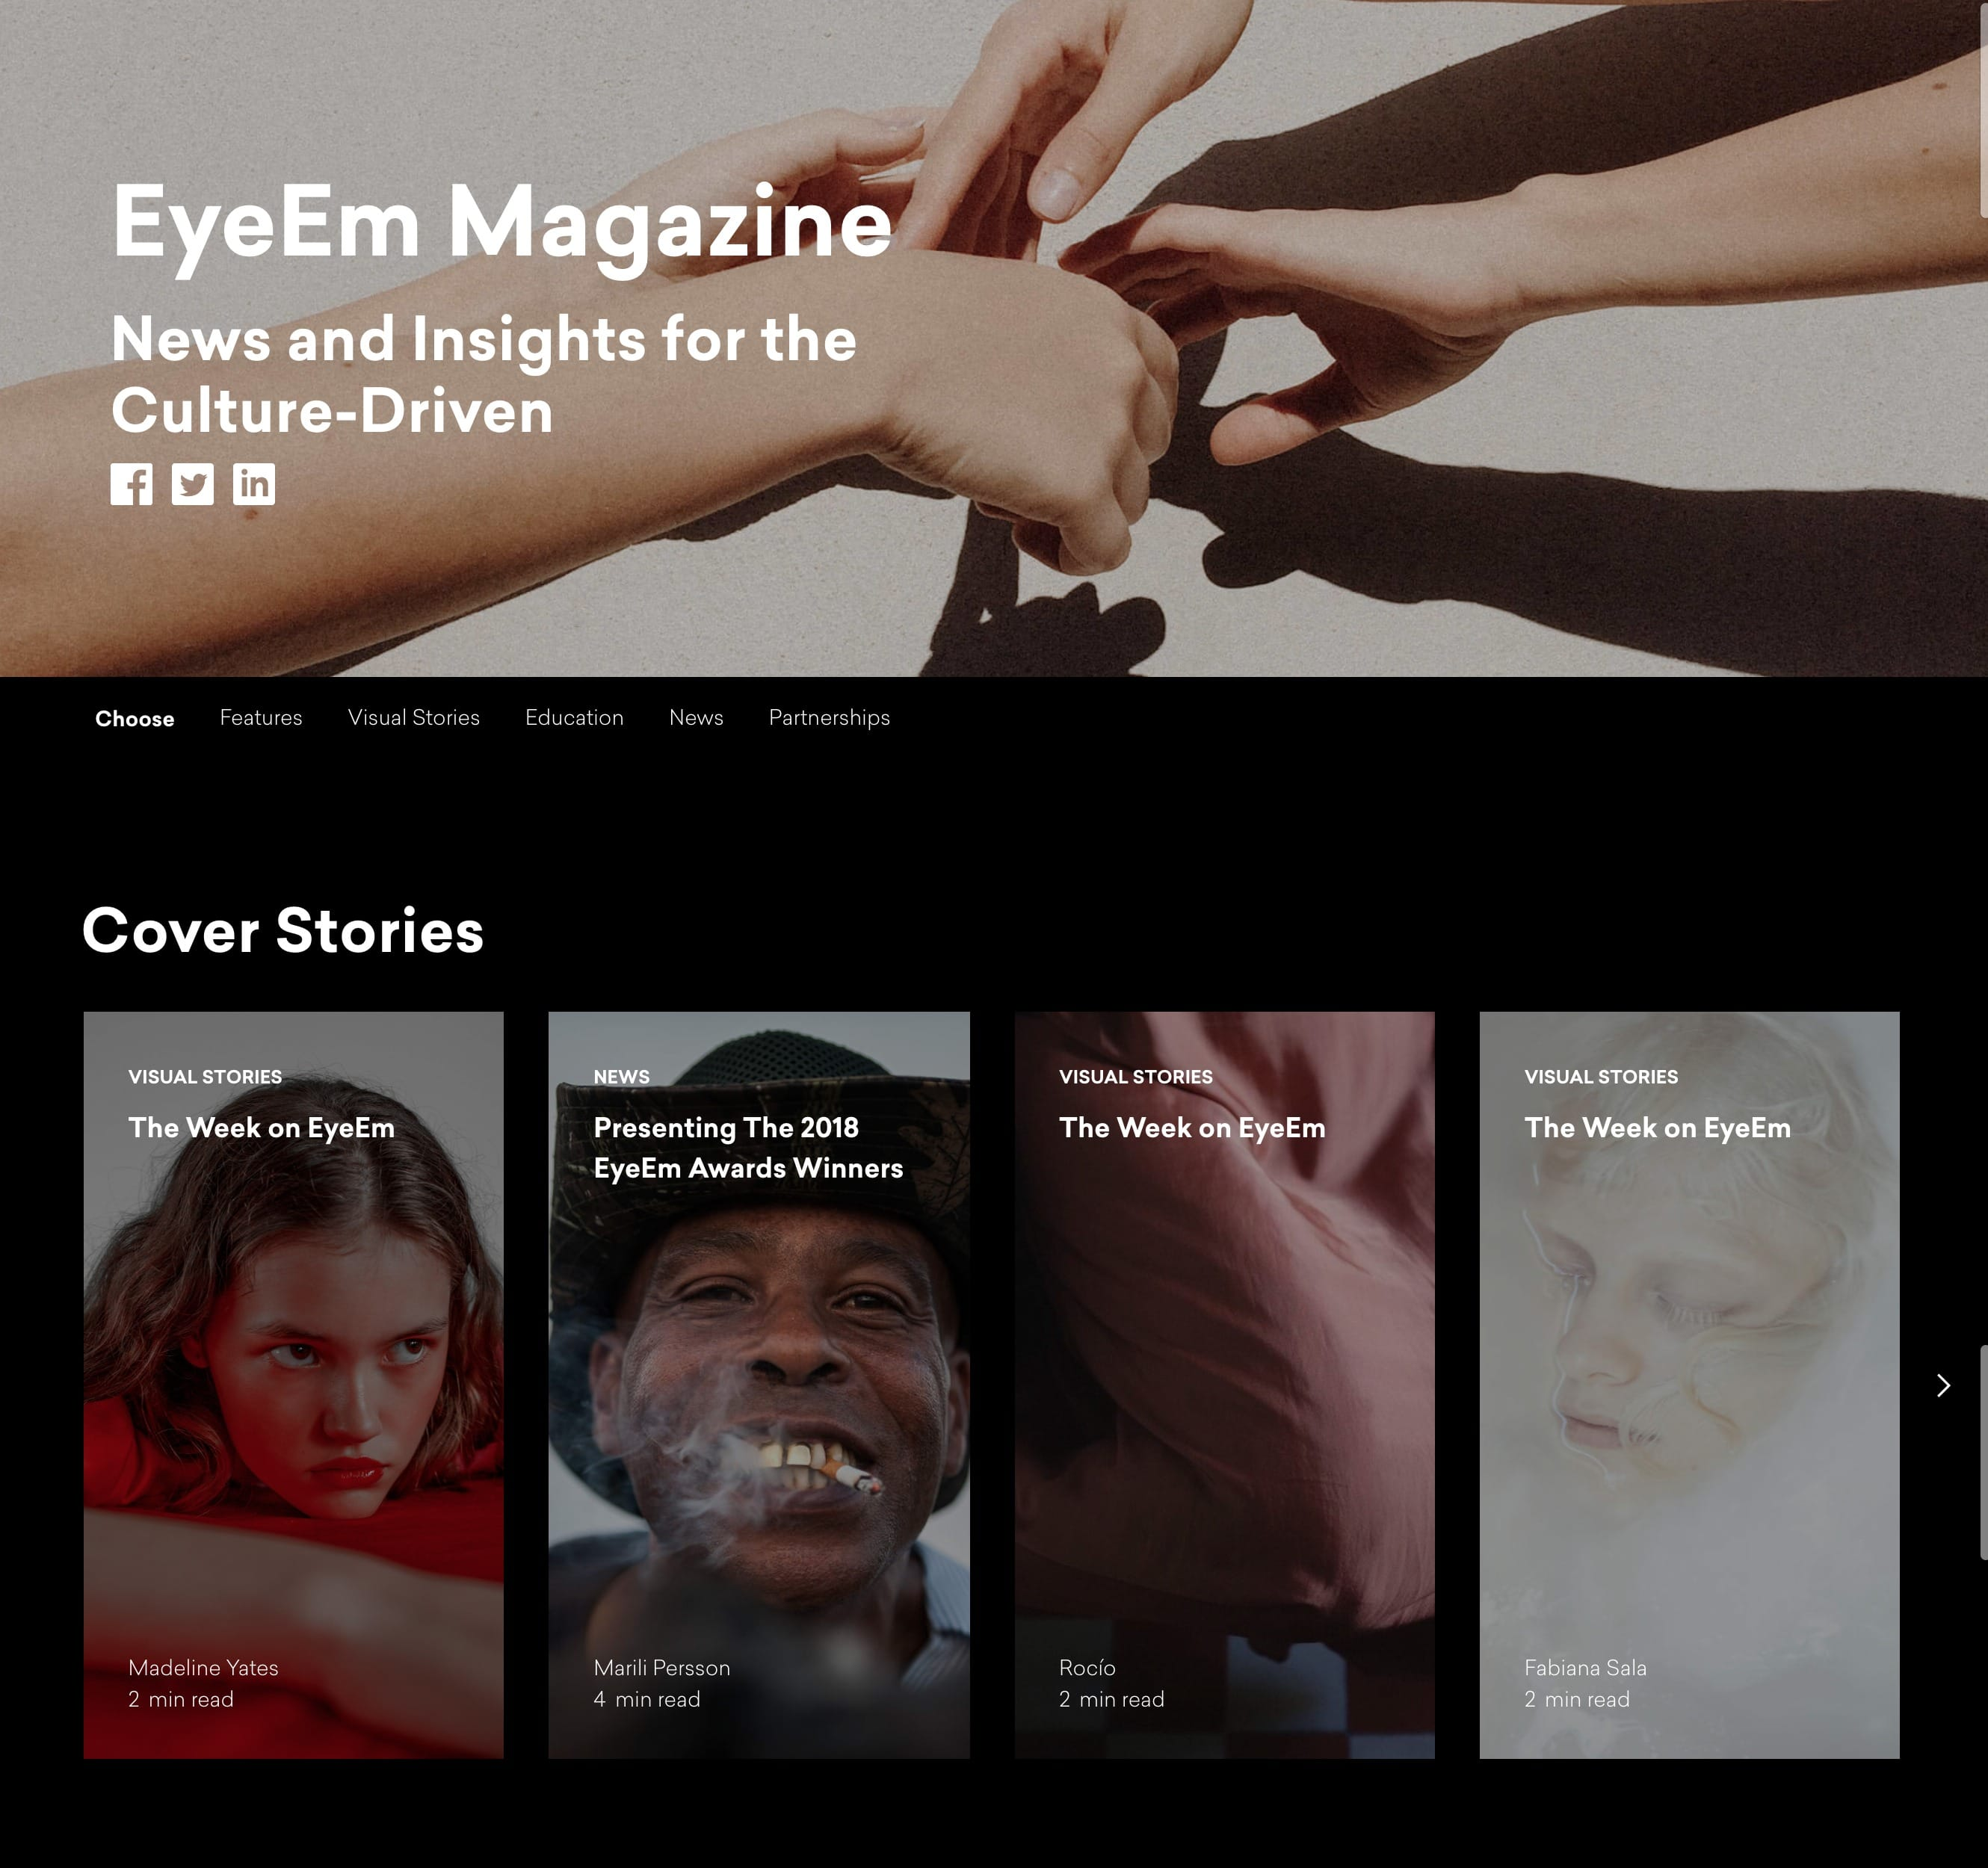 The EyeEm Magazine Covers Photography News, Insights and Tutorials